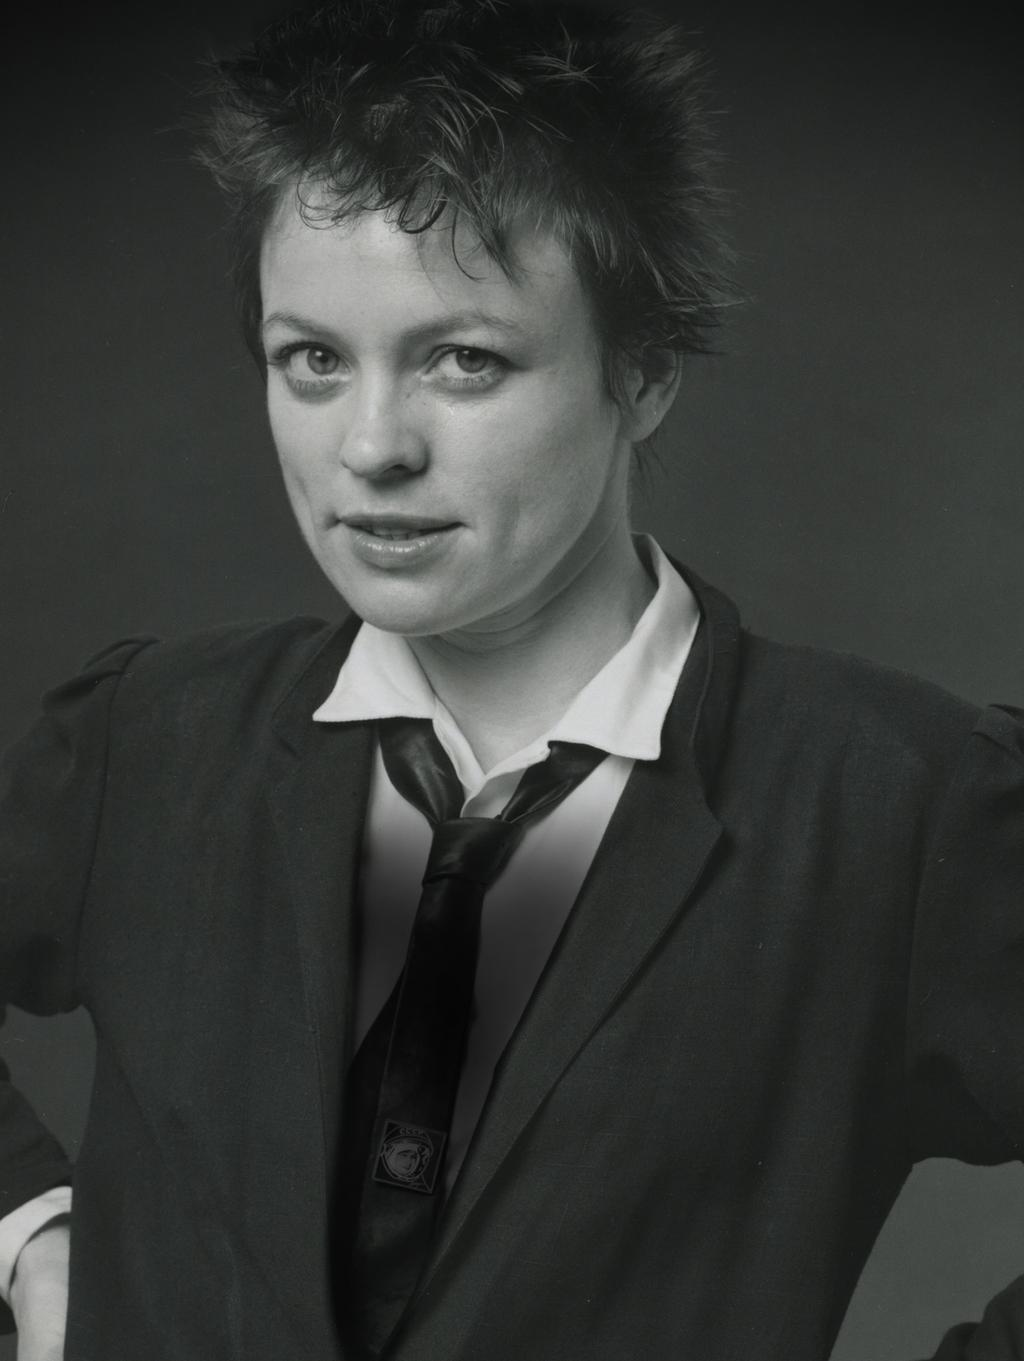 LEAVE YOUR LEGACY TO PIONEERING ART. LEAVE IT TO LAURIE ANDERSON TO SING OUR STORIES IN BOLD NEW KEYS.